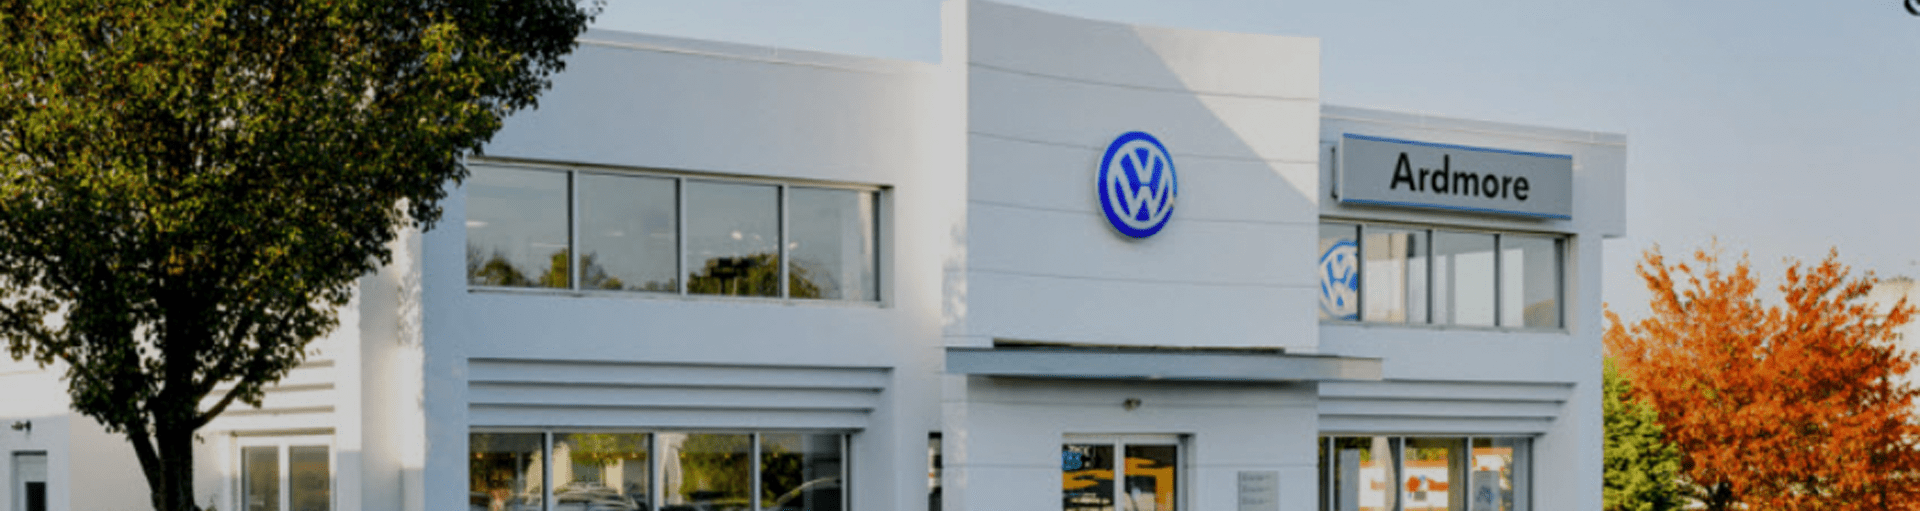 Four Wheel Alignment in Ardmore, PA   Piazza Volkswagen of Ardmore